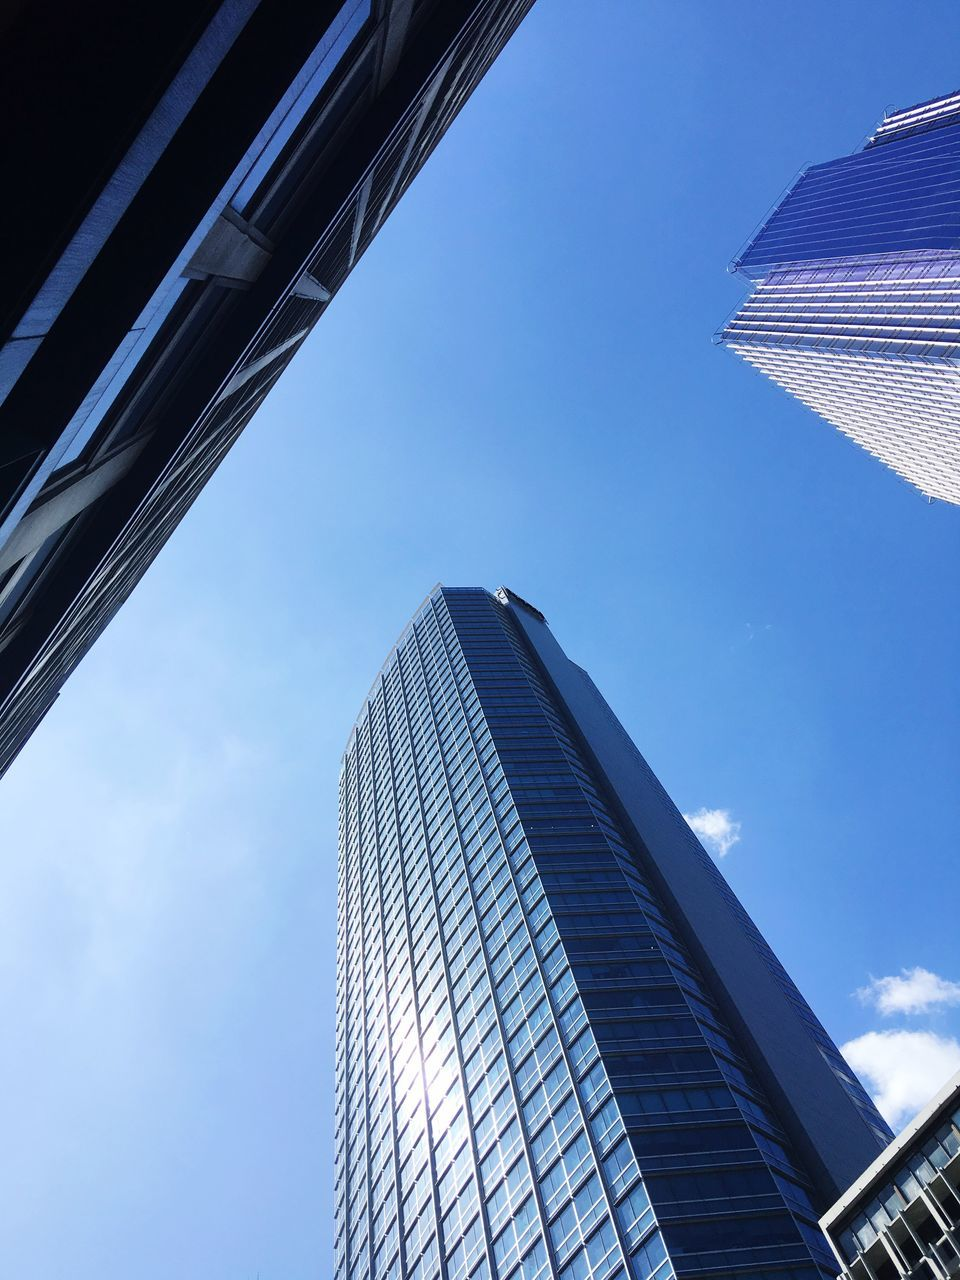 architecture, building exterior, built structure, skyscraper, modern, low angle view, sky, city, day, outdoors, no people, growth, blue, travel destinations, office park